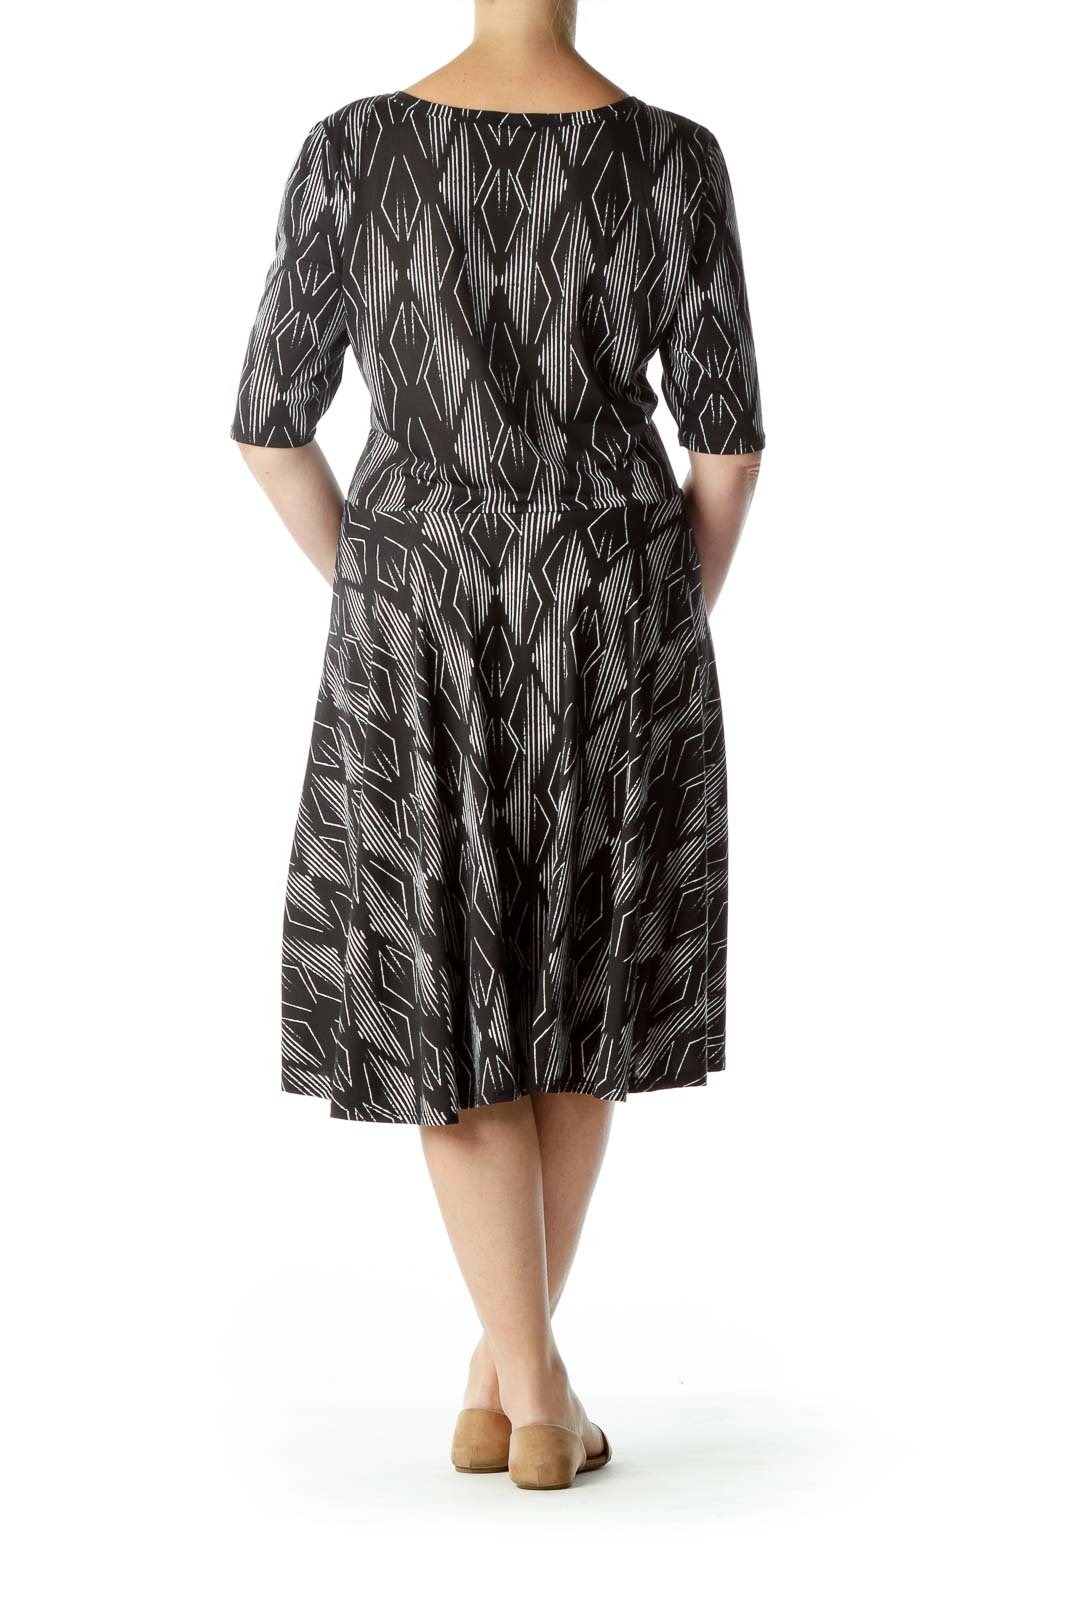 Black White Printed Round Neck Jersey Dress